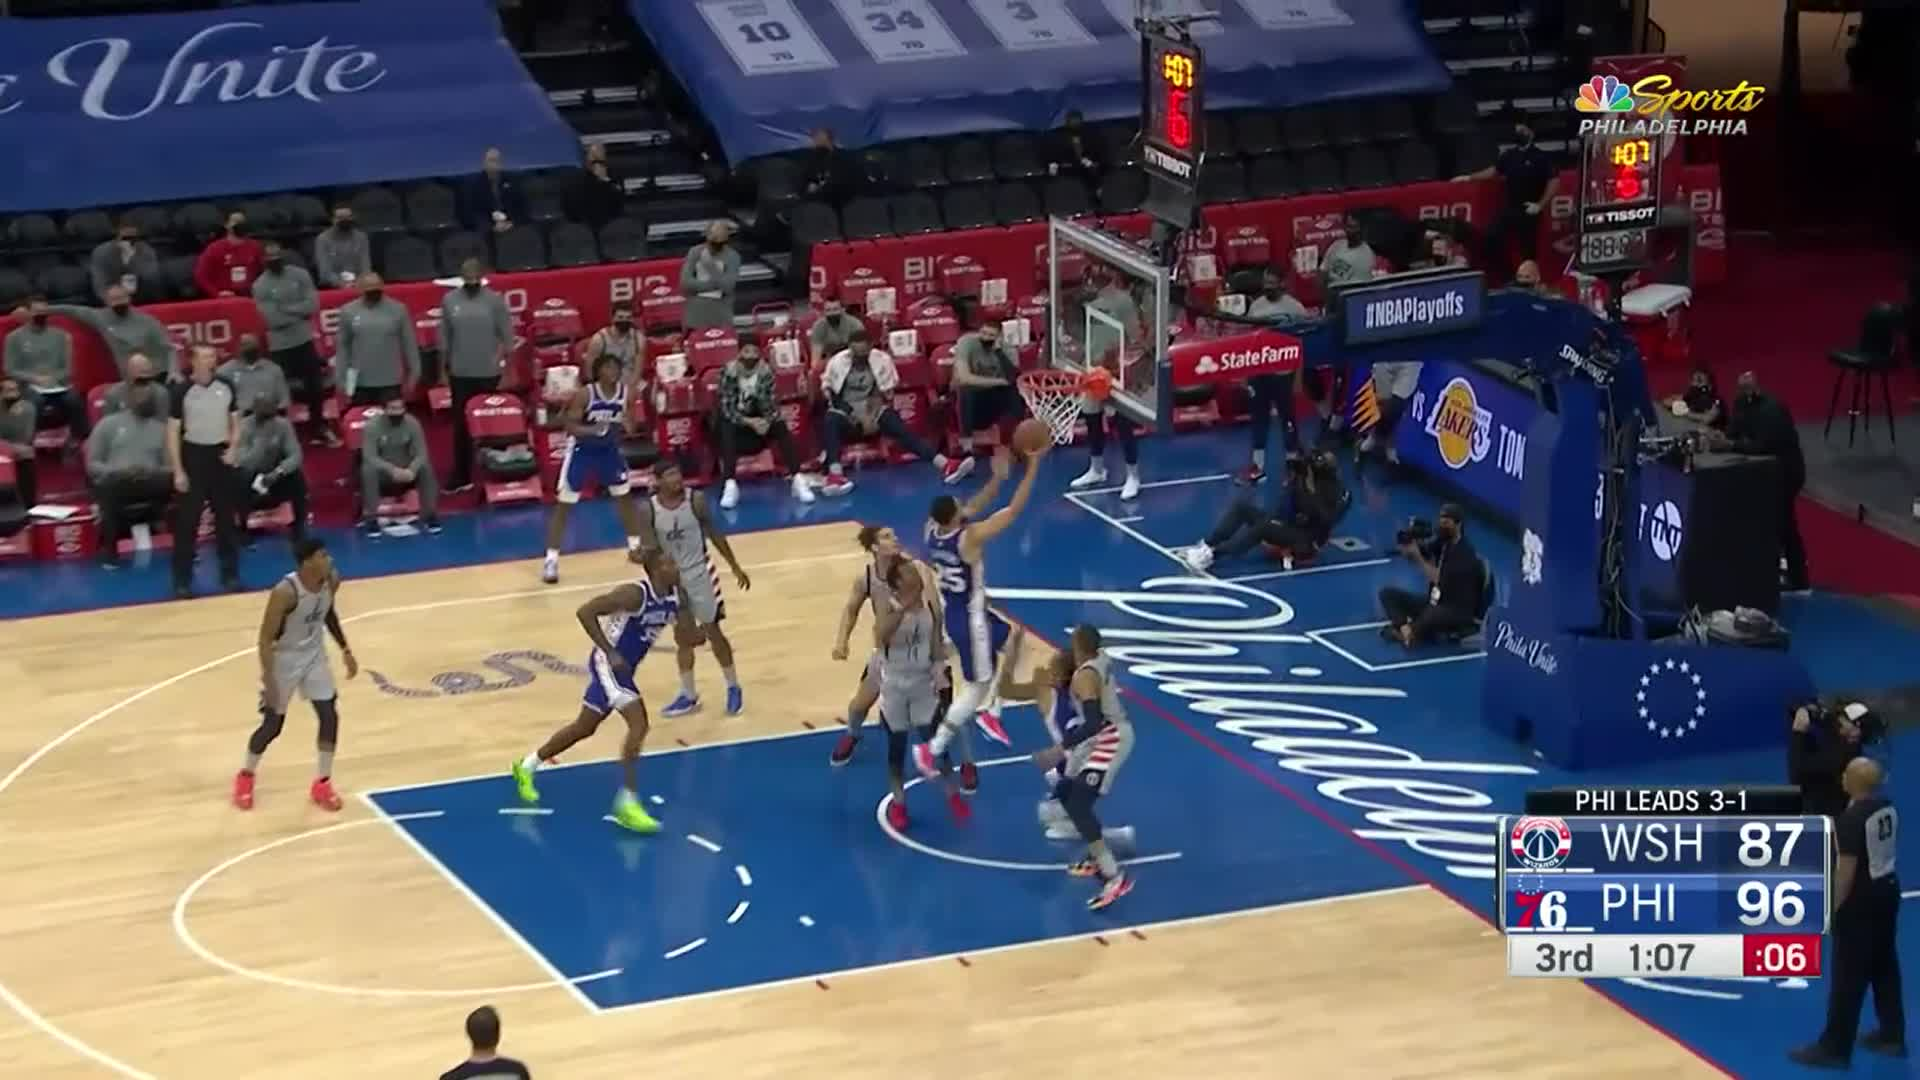 Highlights | 76ers vs Wizards (06.02.21)